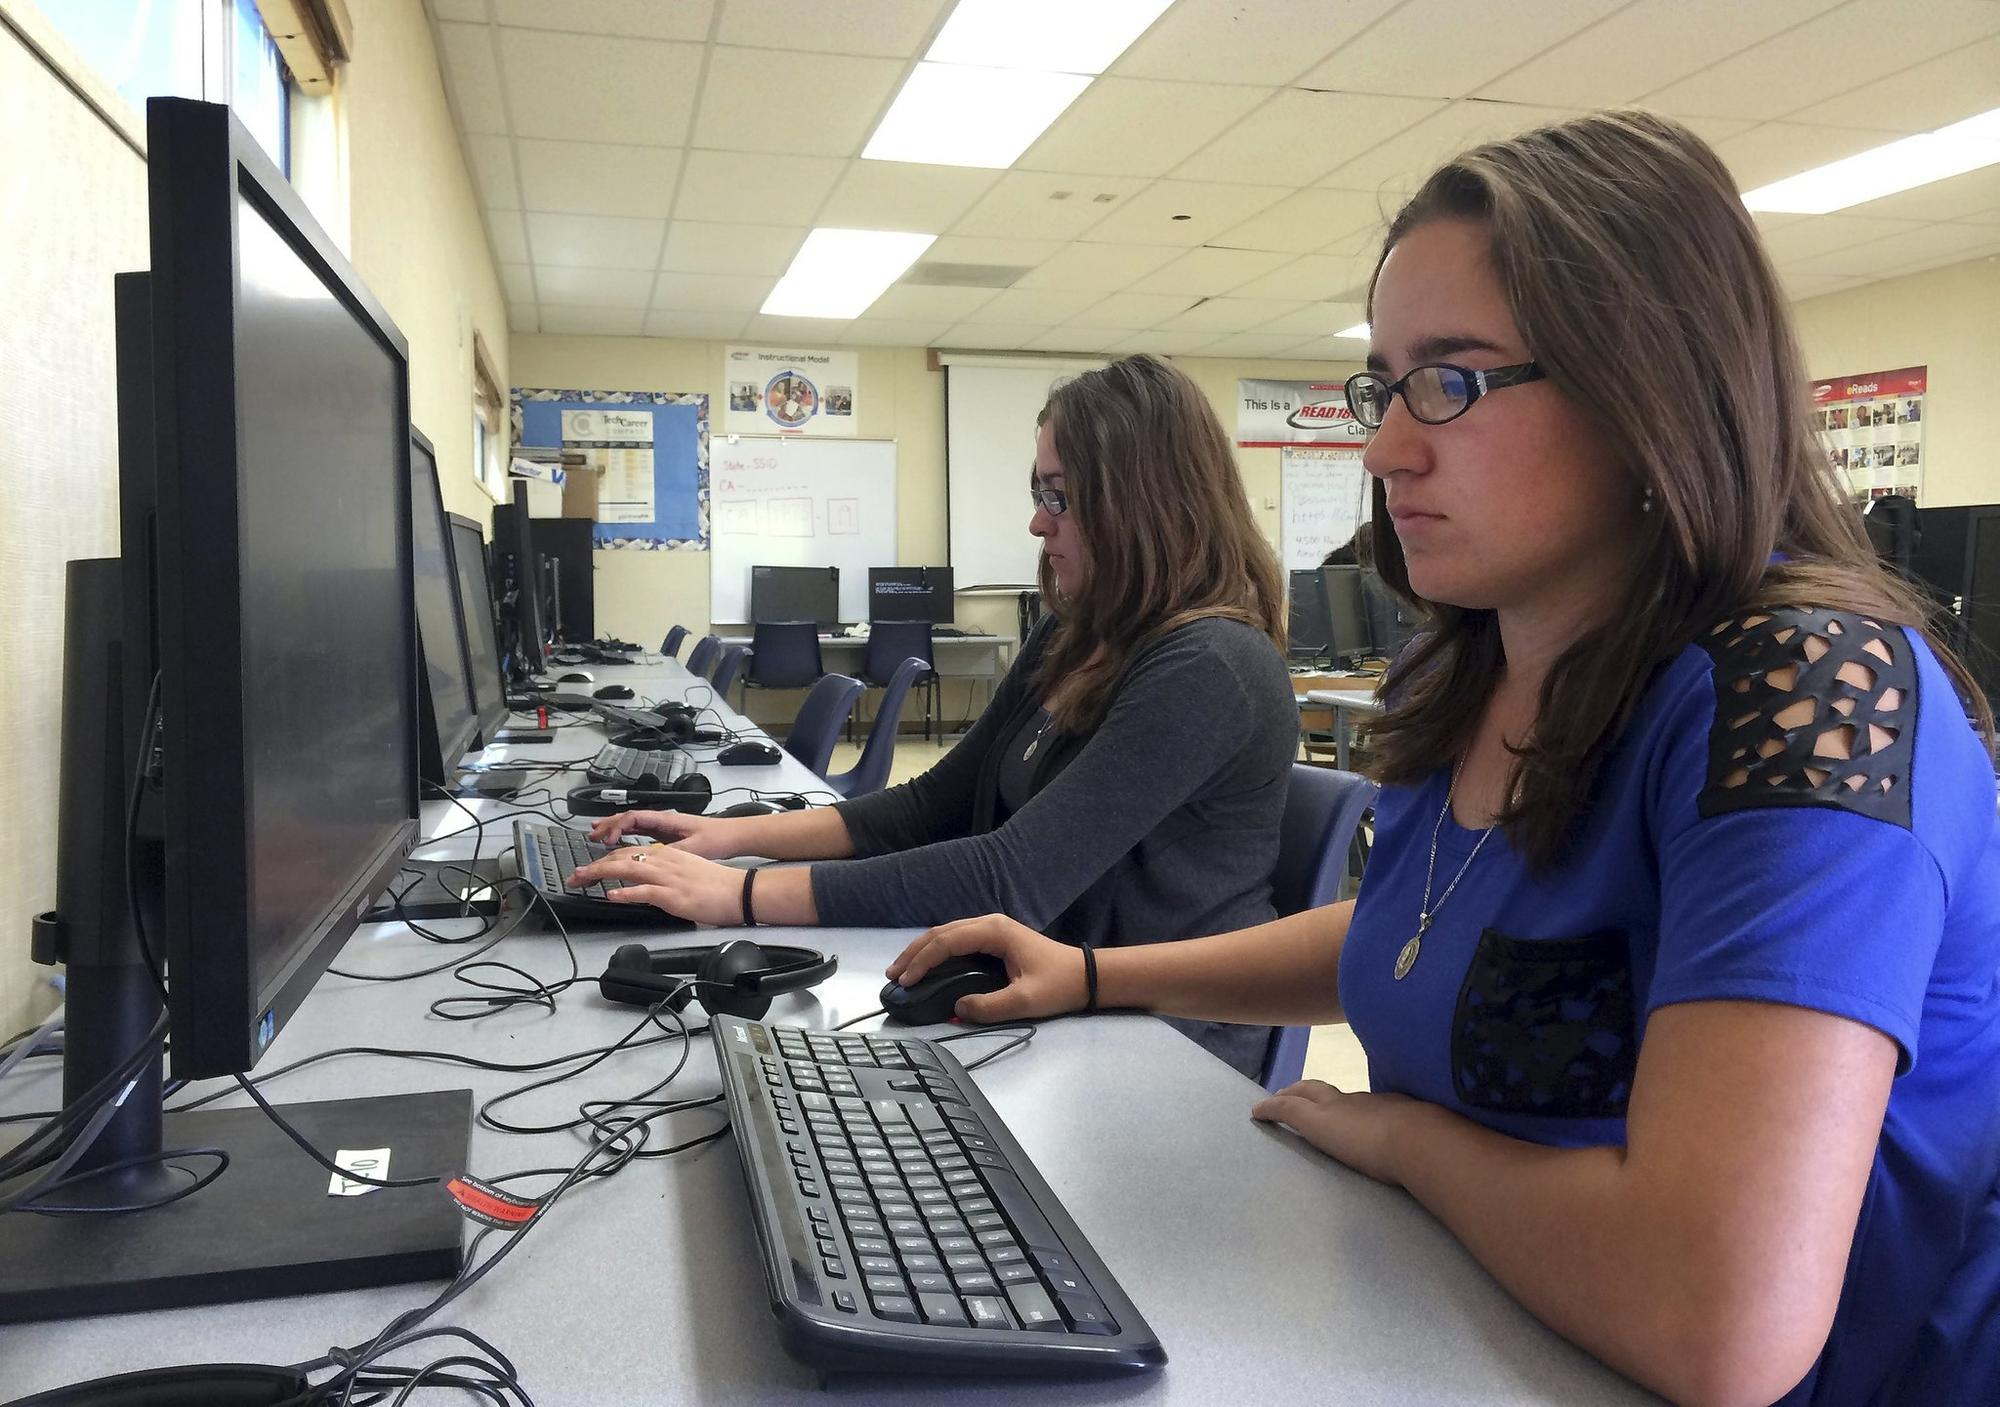 In this April 30, 2015 photo, Leticia Fonseca, 16, left, and her twin sister, Sylvia Fonseca, right, work in the computer lab at Cuyama Valley High School after taking the new Co